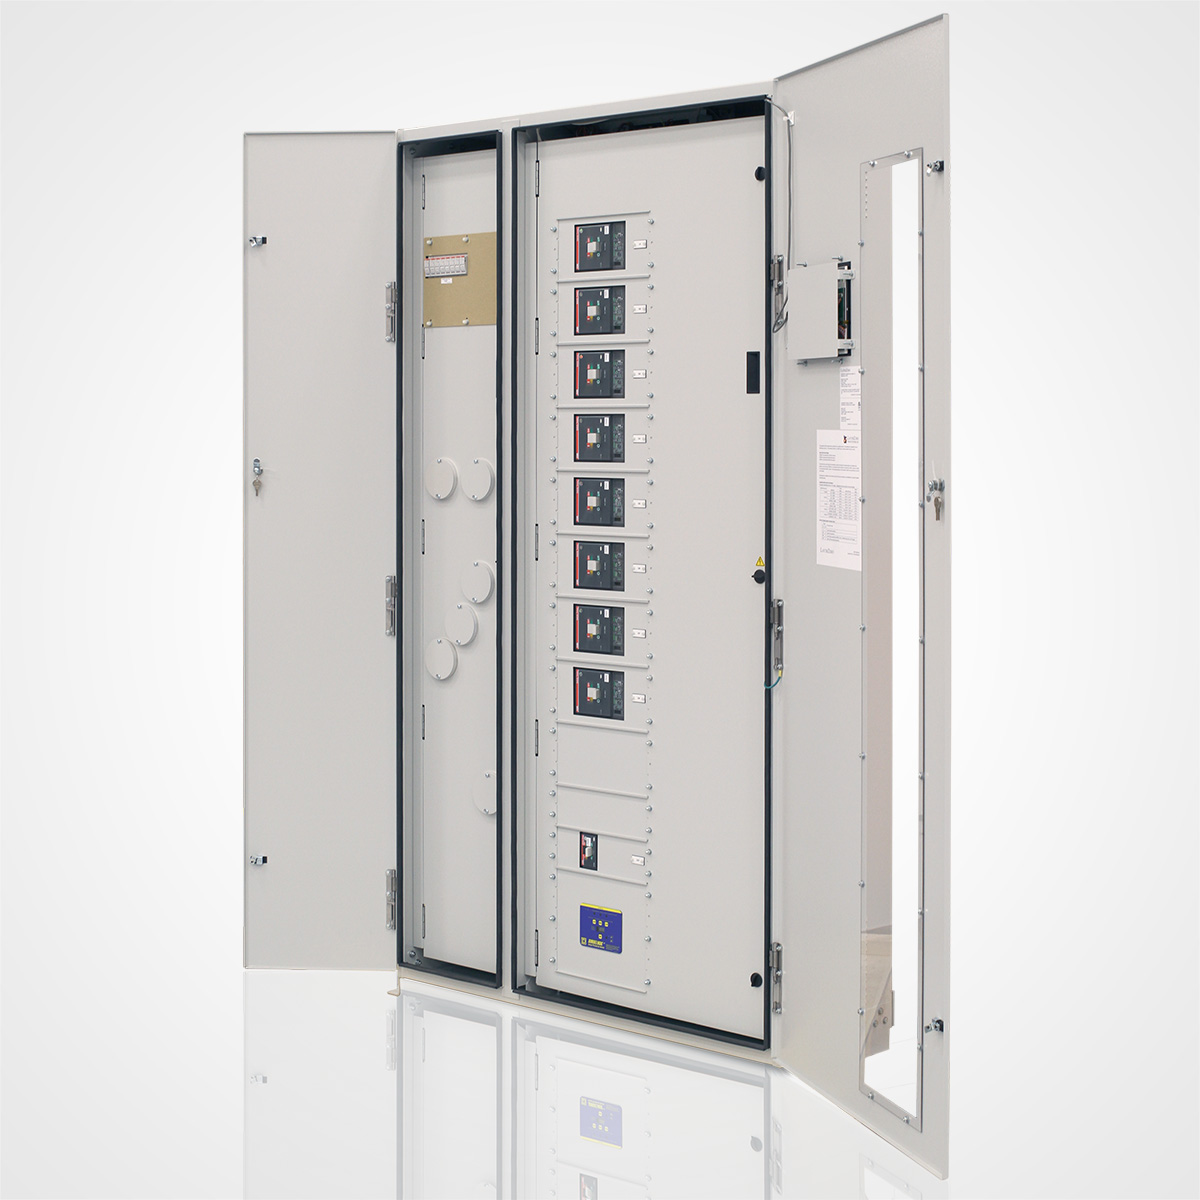 The LayerZero Series 70: eRDP Remote Distribution Panel with Outer Doors Open.